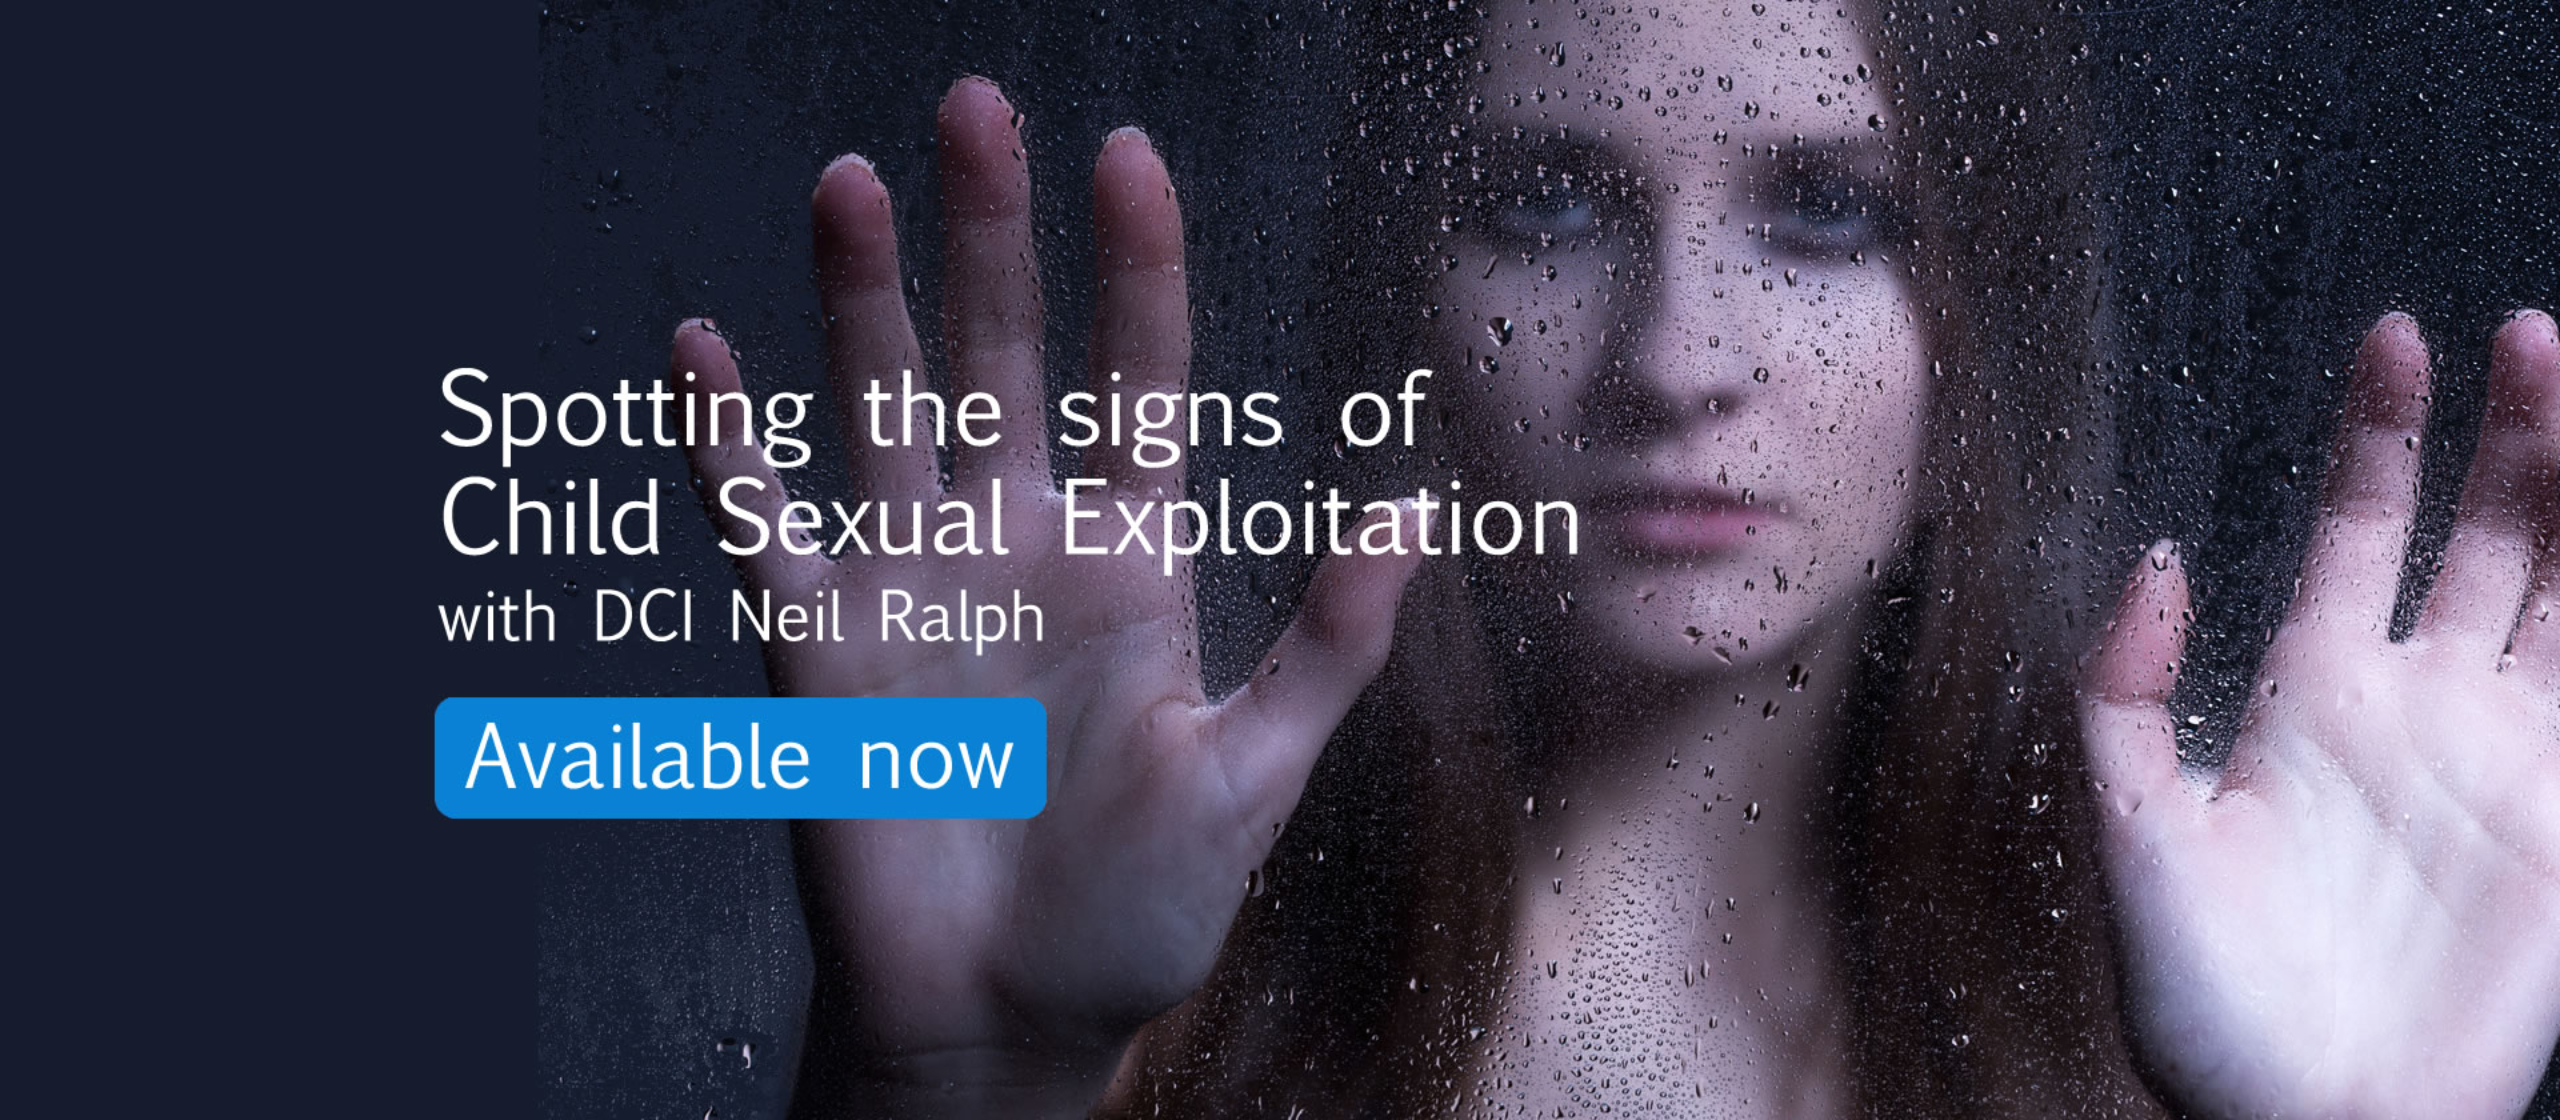 Spotting the signs of Child Sexual Exploitation